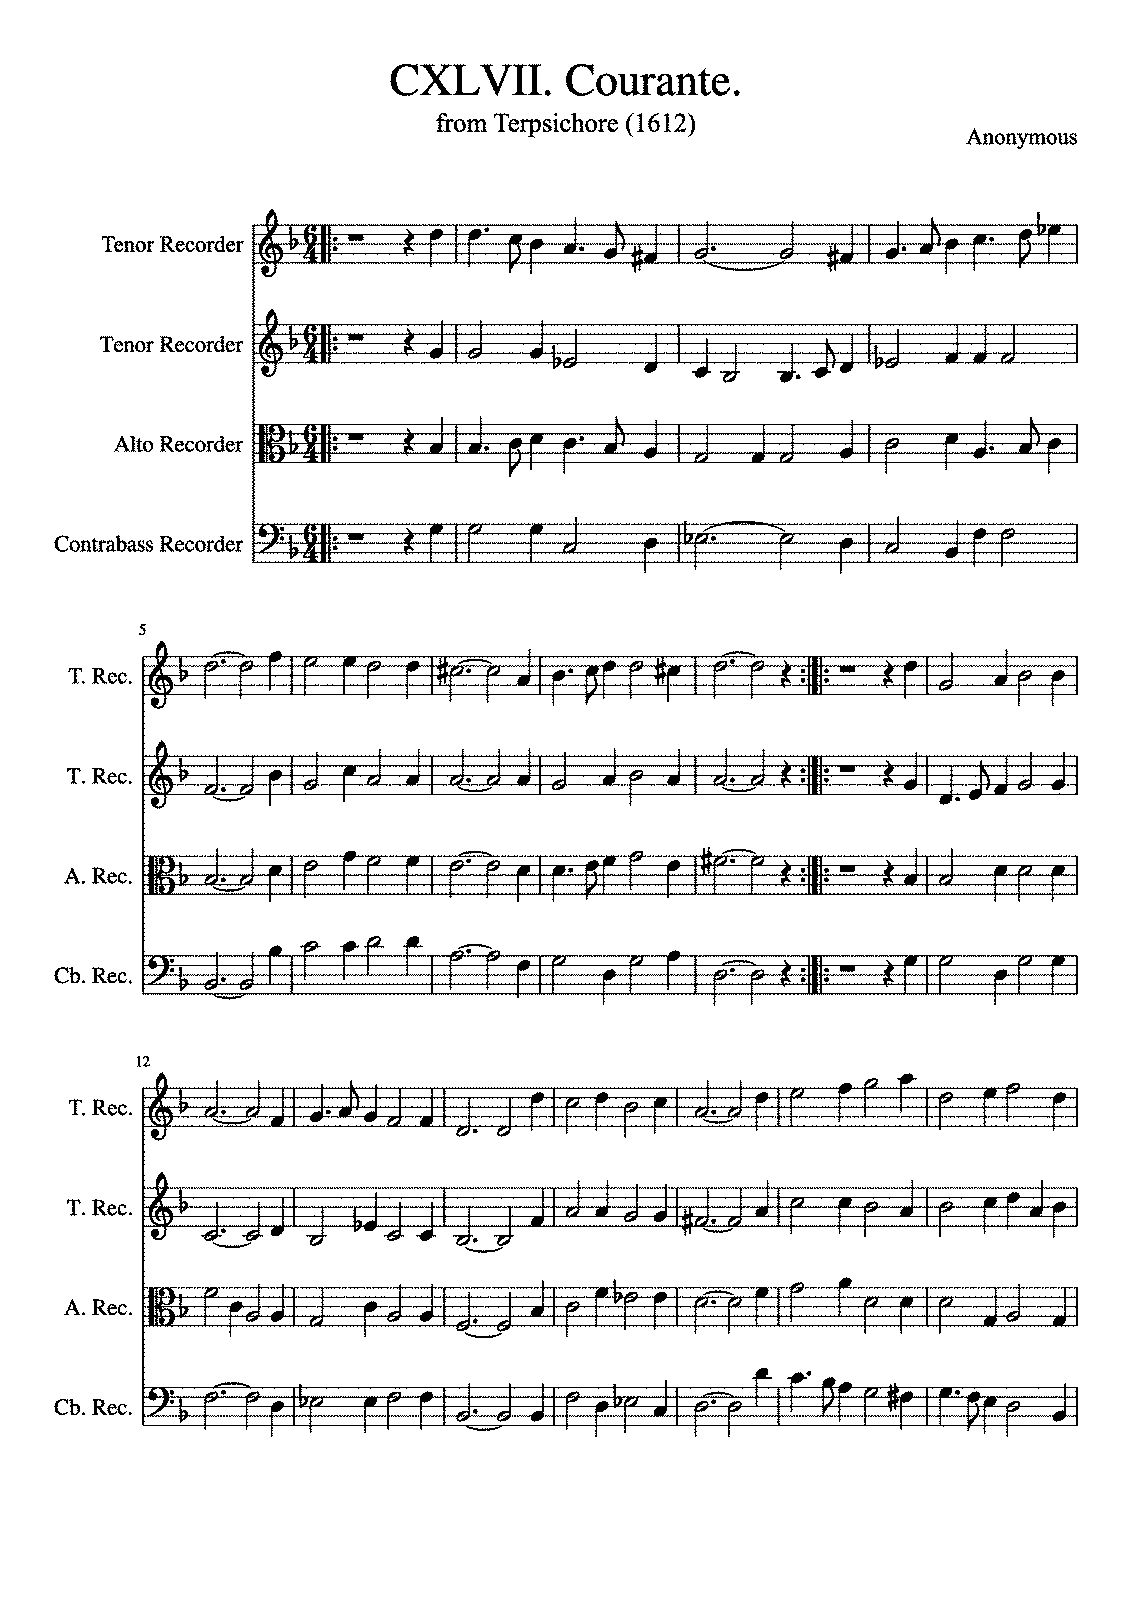 PMLP596564-CXLVII Courante from Terpsichore Anonymous 1612.pdf